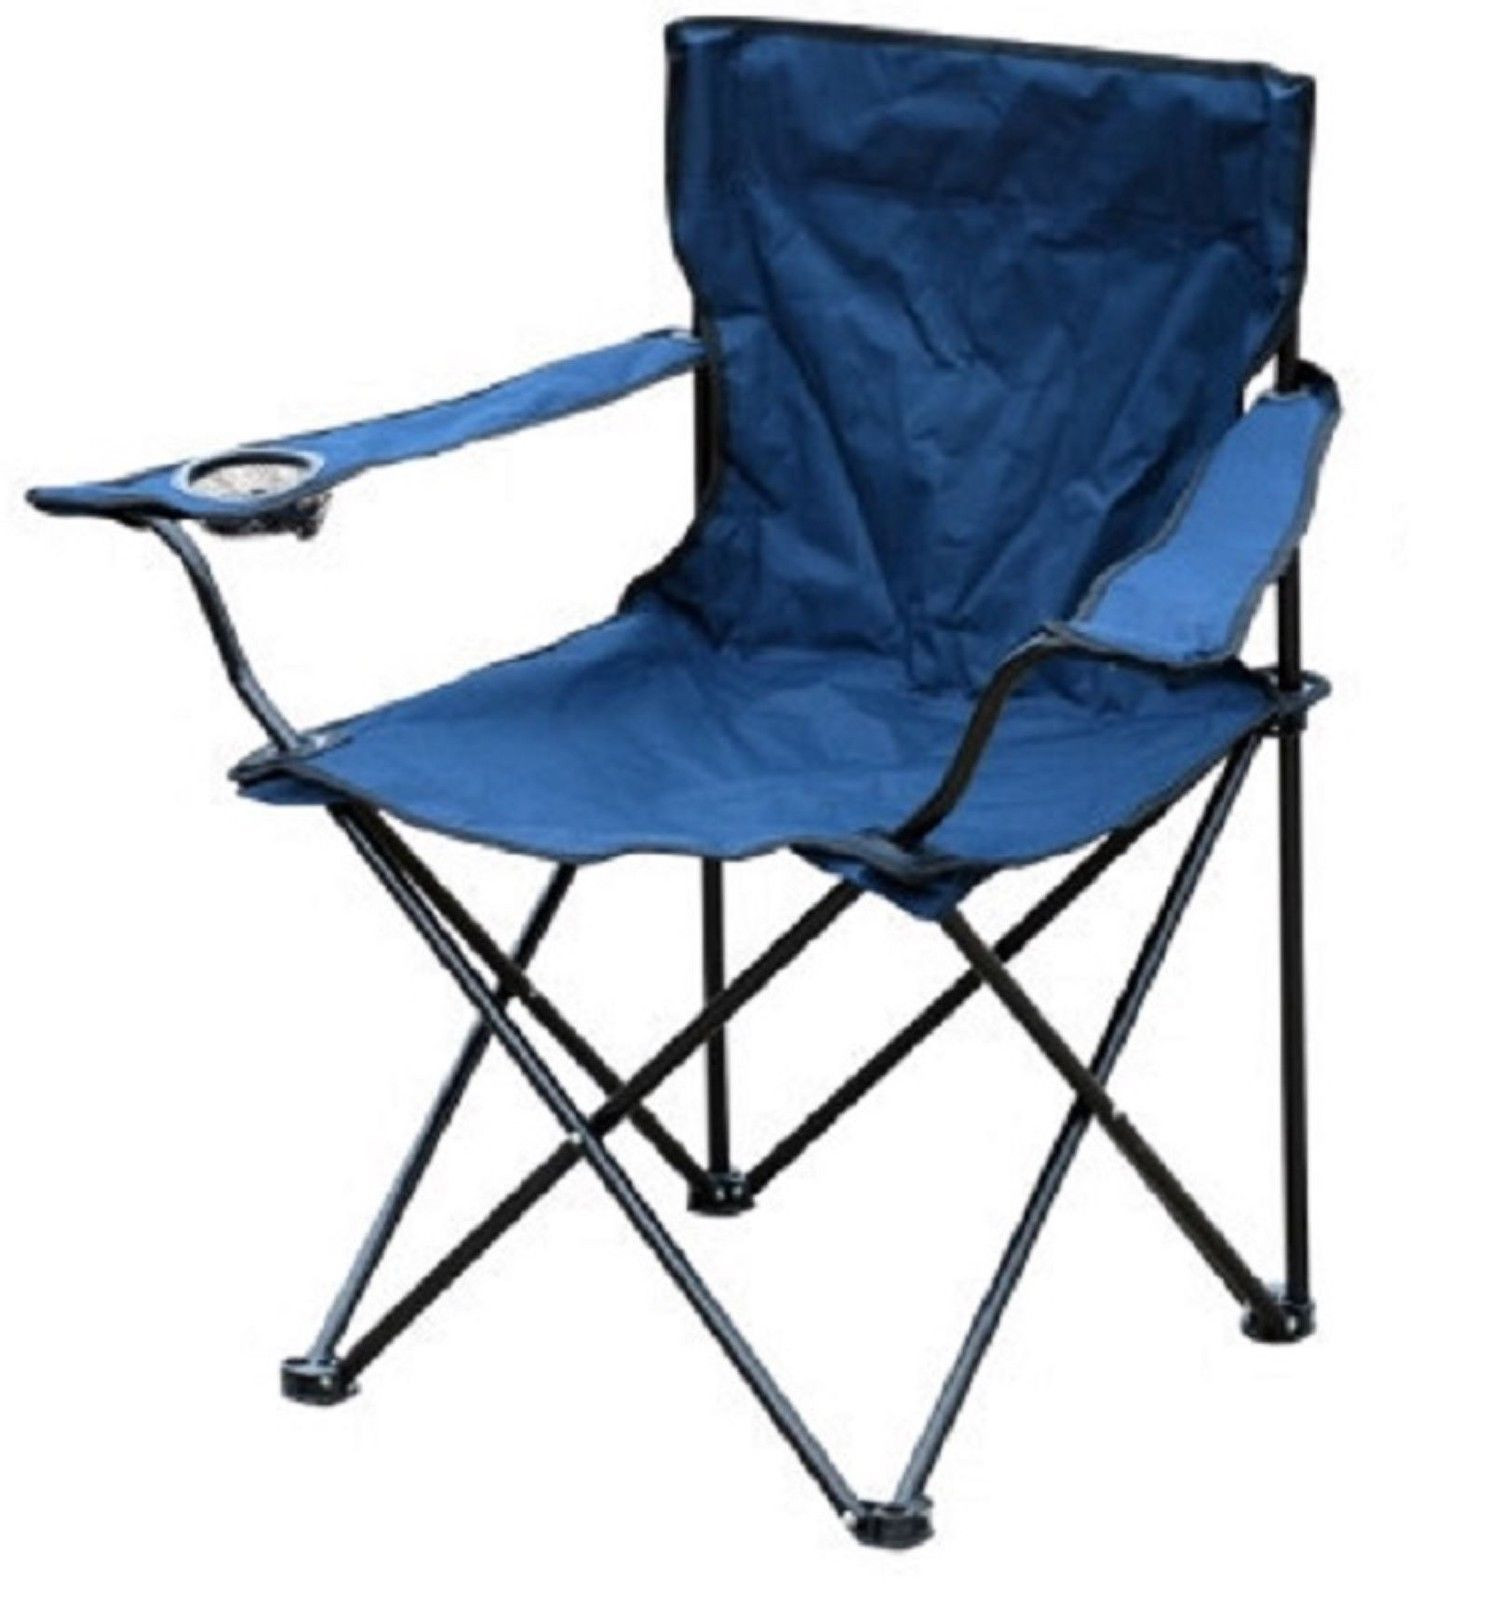 Best ideas about Portable Folding Chair . Save or Pin BRAND NEW LIGHTWEIGHT PORTABLE OUTDOOR CAMPING GARDEN Now.